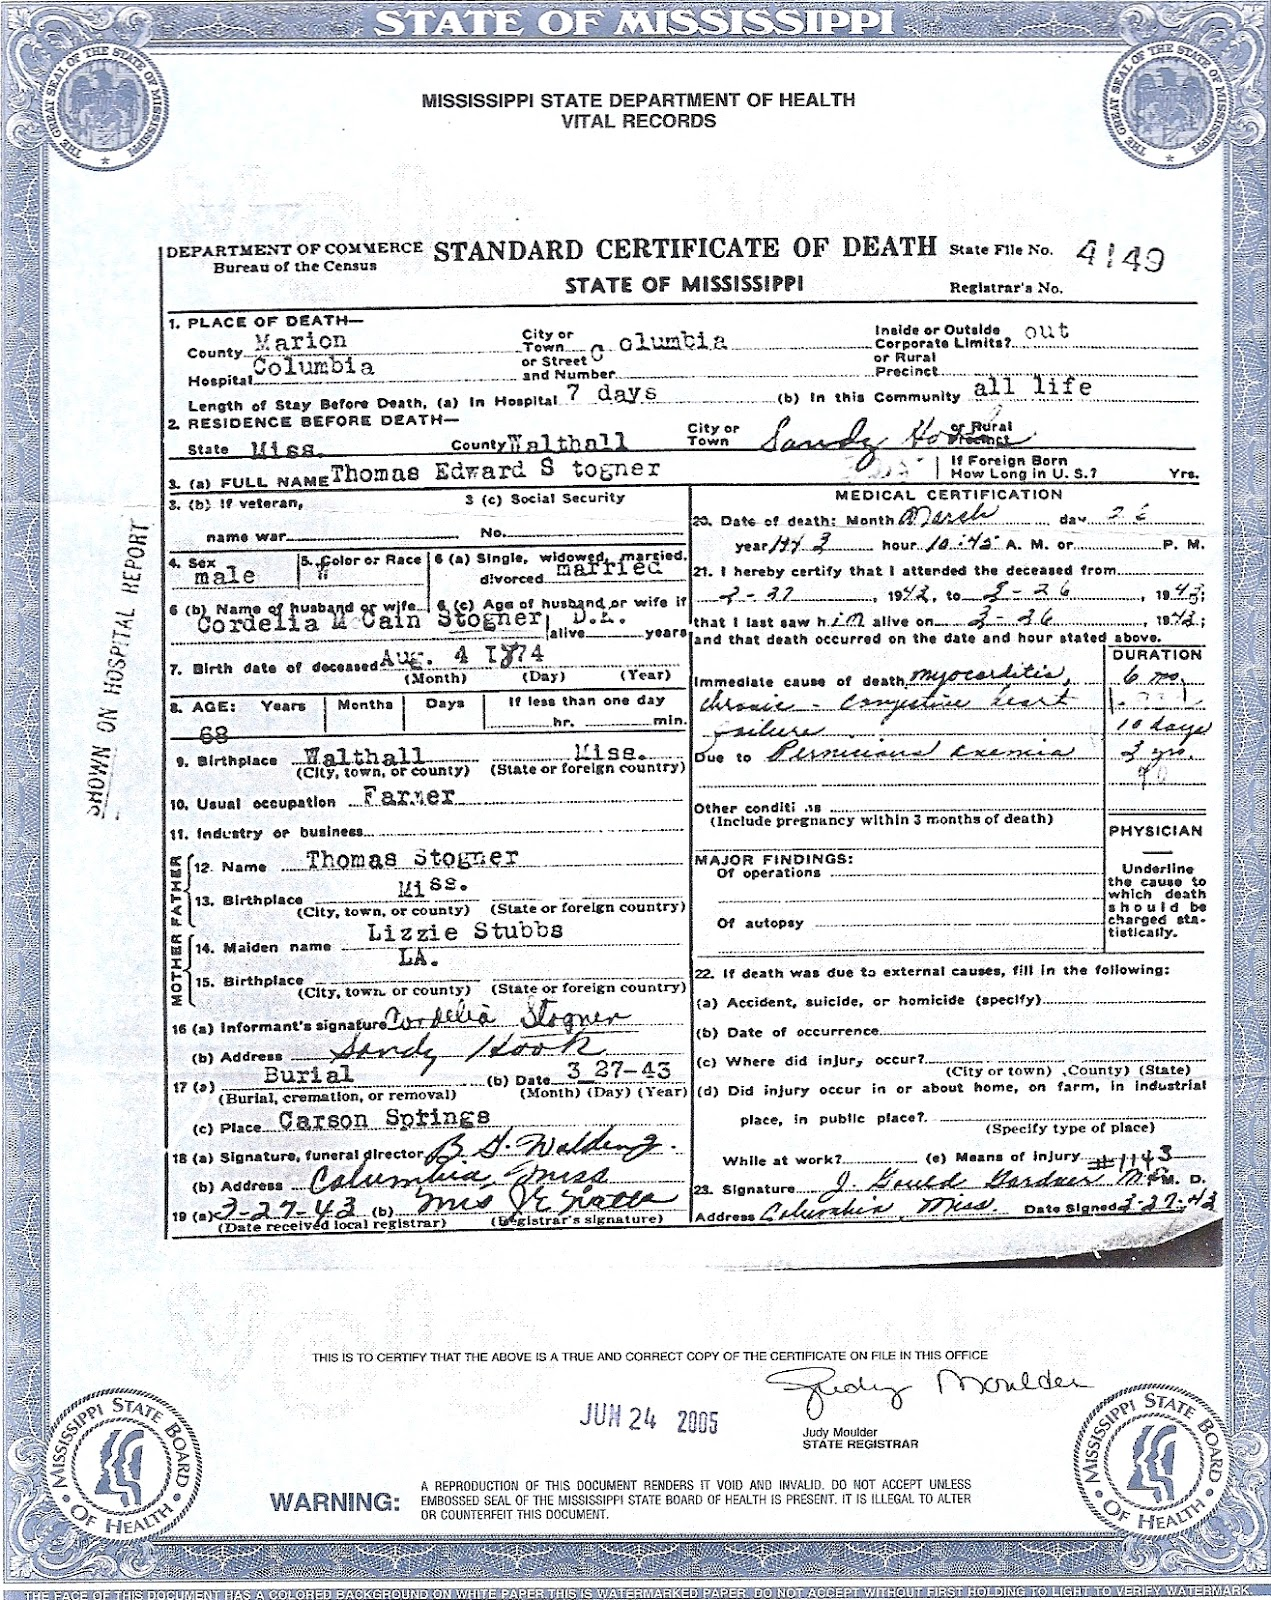 The family snoop death certificate thomas edward stogner death certificate thomas edward stogner xflitez Images